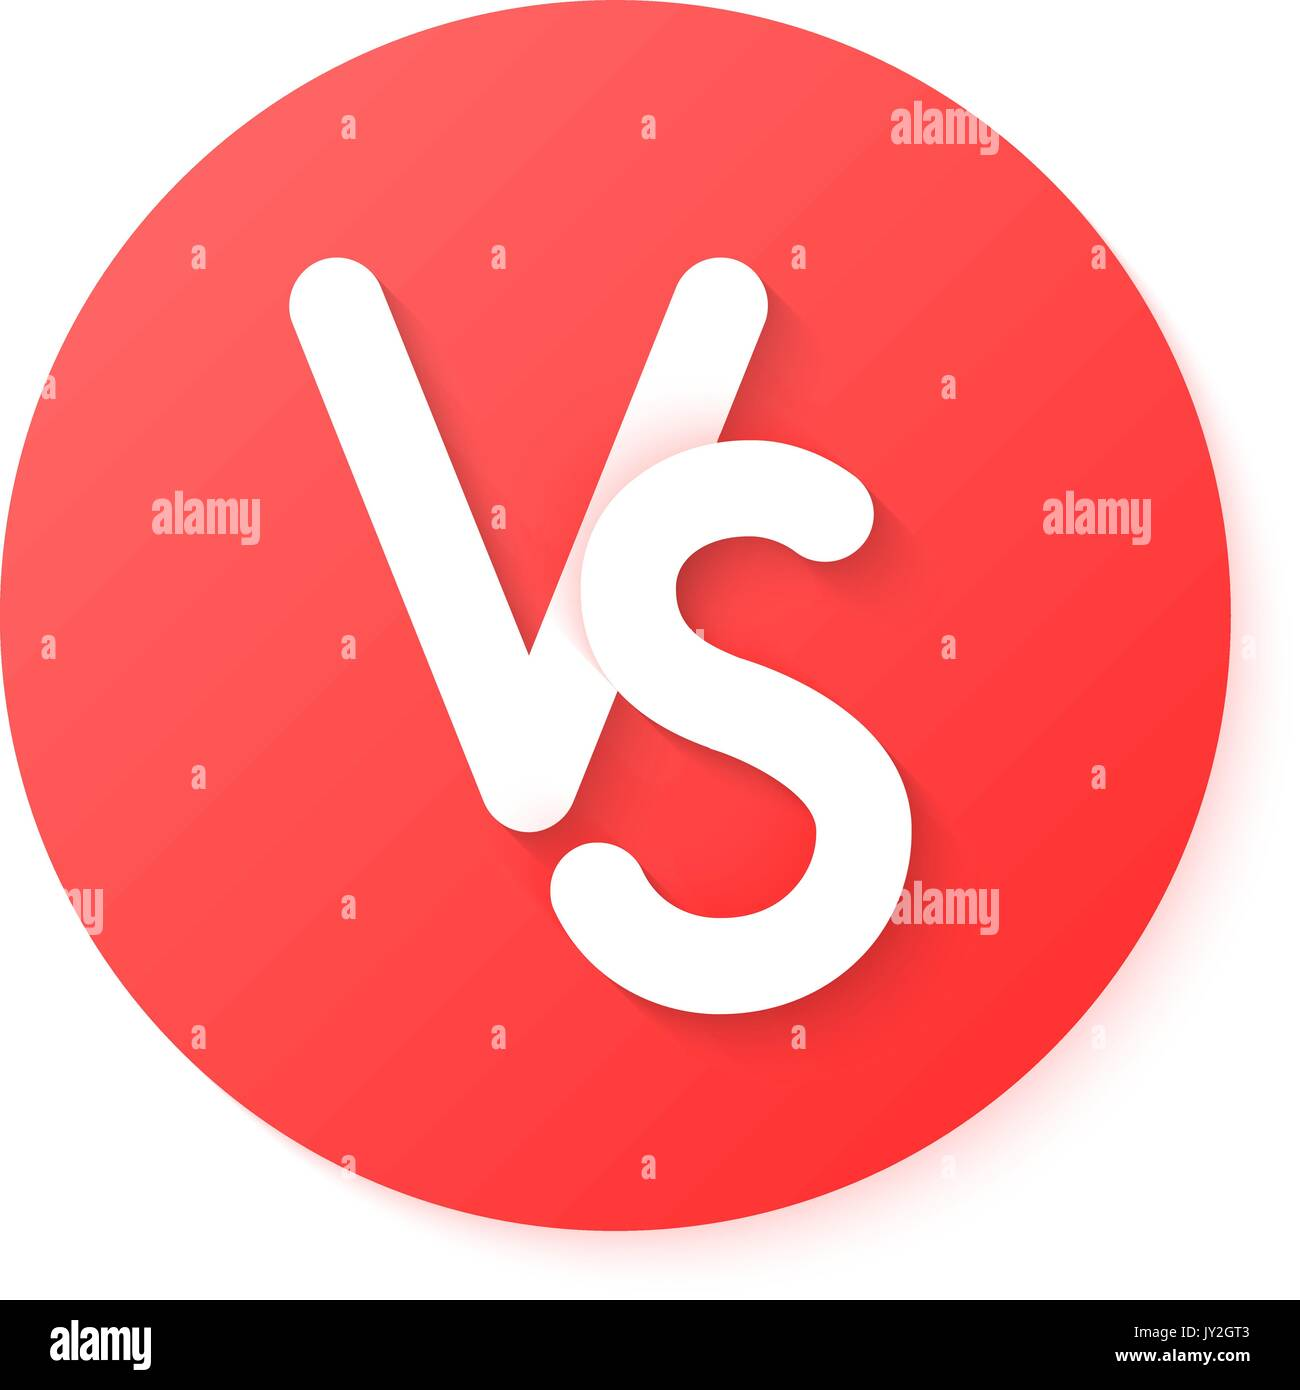 red circle versus emblem like confrontation - Stock Vector